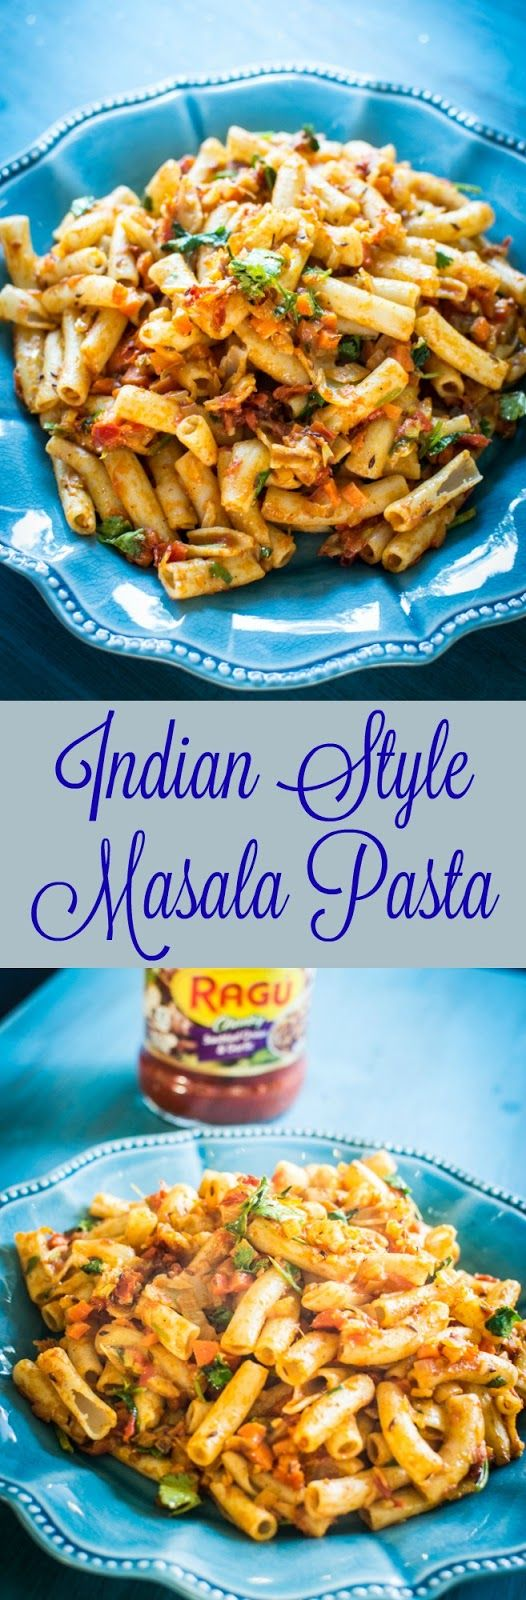 98 best Indian pasta/vermicelli/idiyappam images on Pinterest ...